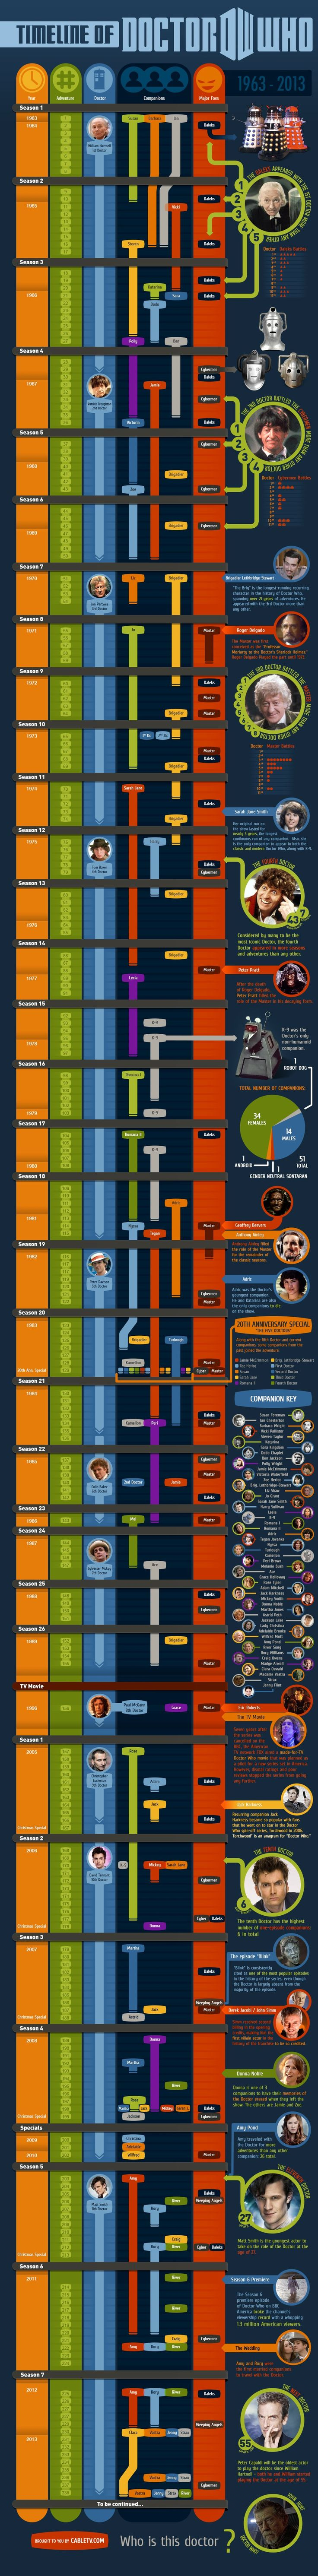 CableTV.com Doctor Who Timeline Infographic